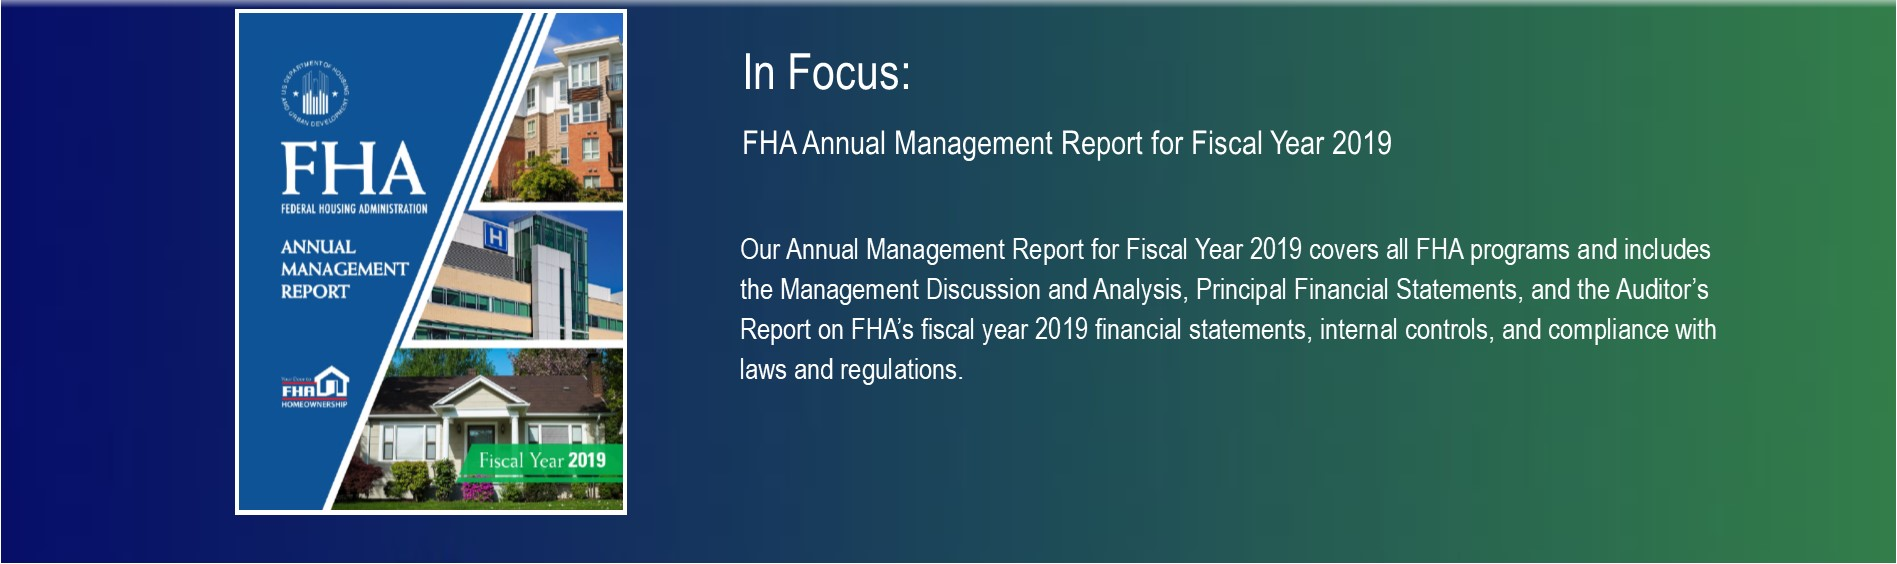 In Focus: FHA Annual Management Report for Fiscal Year 2019. HUD Photo